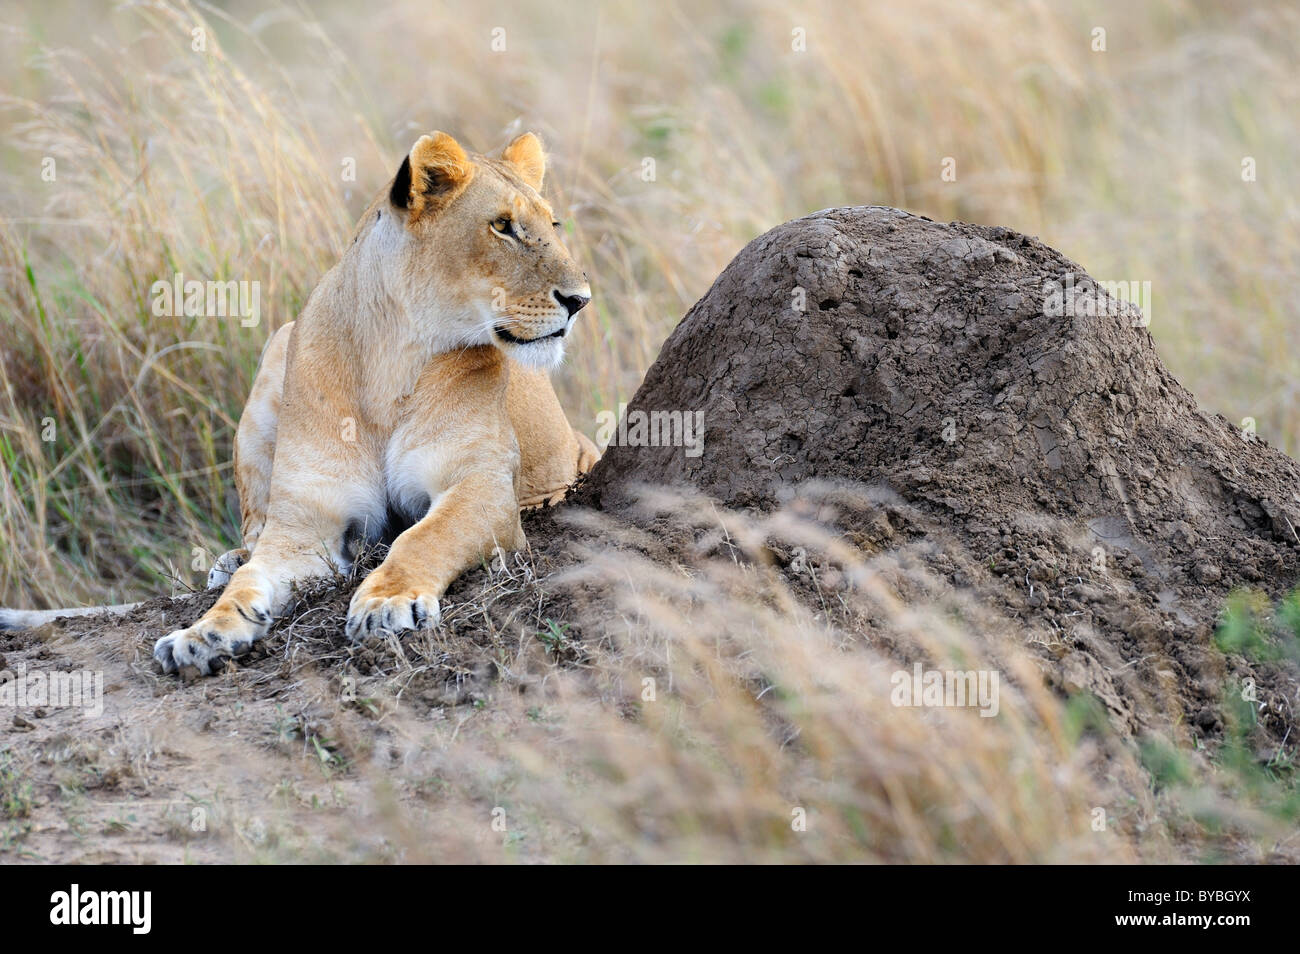 Lion (Panthera leo), female resting on a termite mound, Masai Mara National Reserve, Kenya, Africa - Stock Image